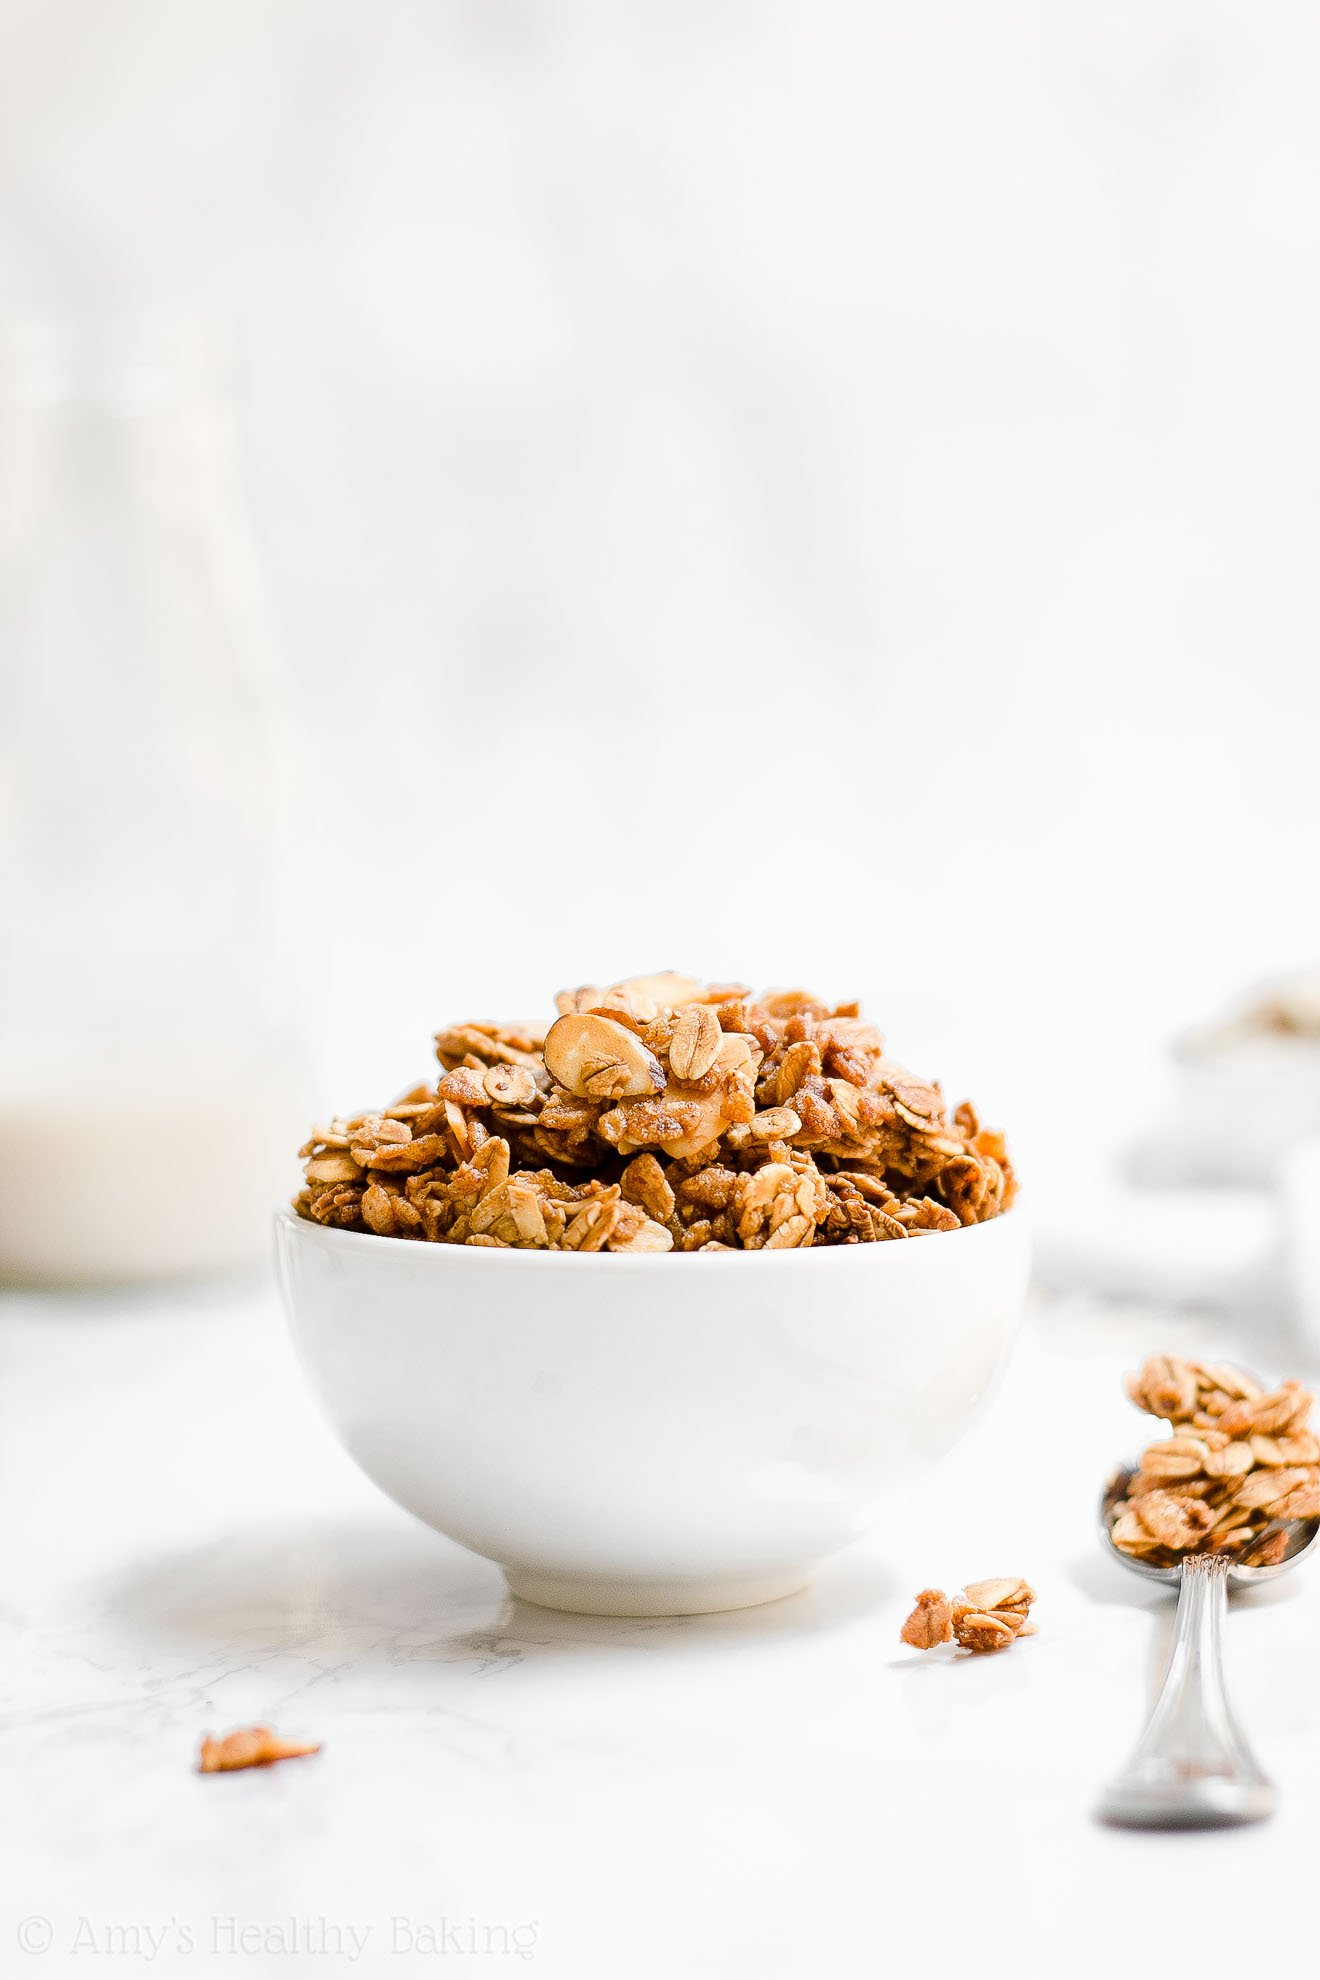 Easy Healthy Clean Eating Crunchy Vanilla Almond Granola Clusters